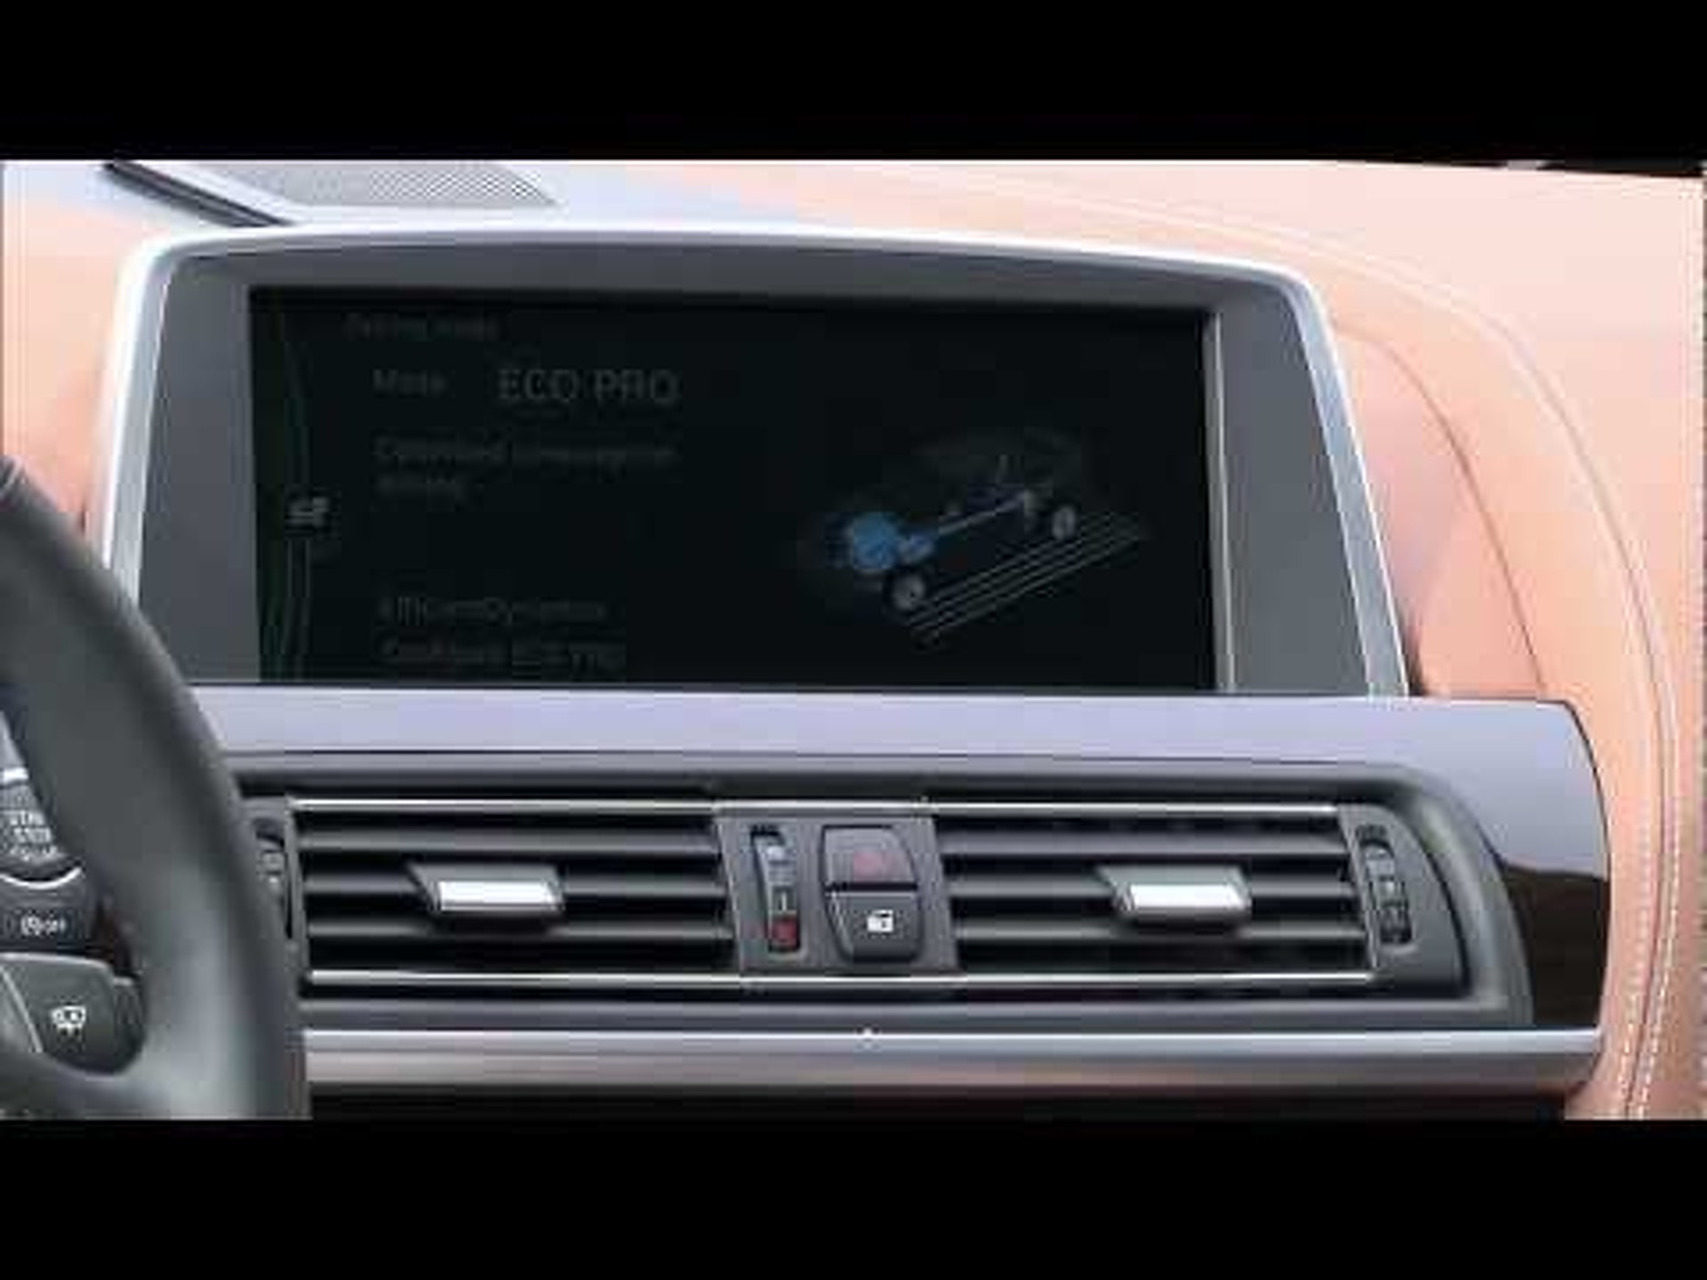 2013 BMW 6-Series Gran Coupe - Technical Features